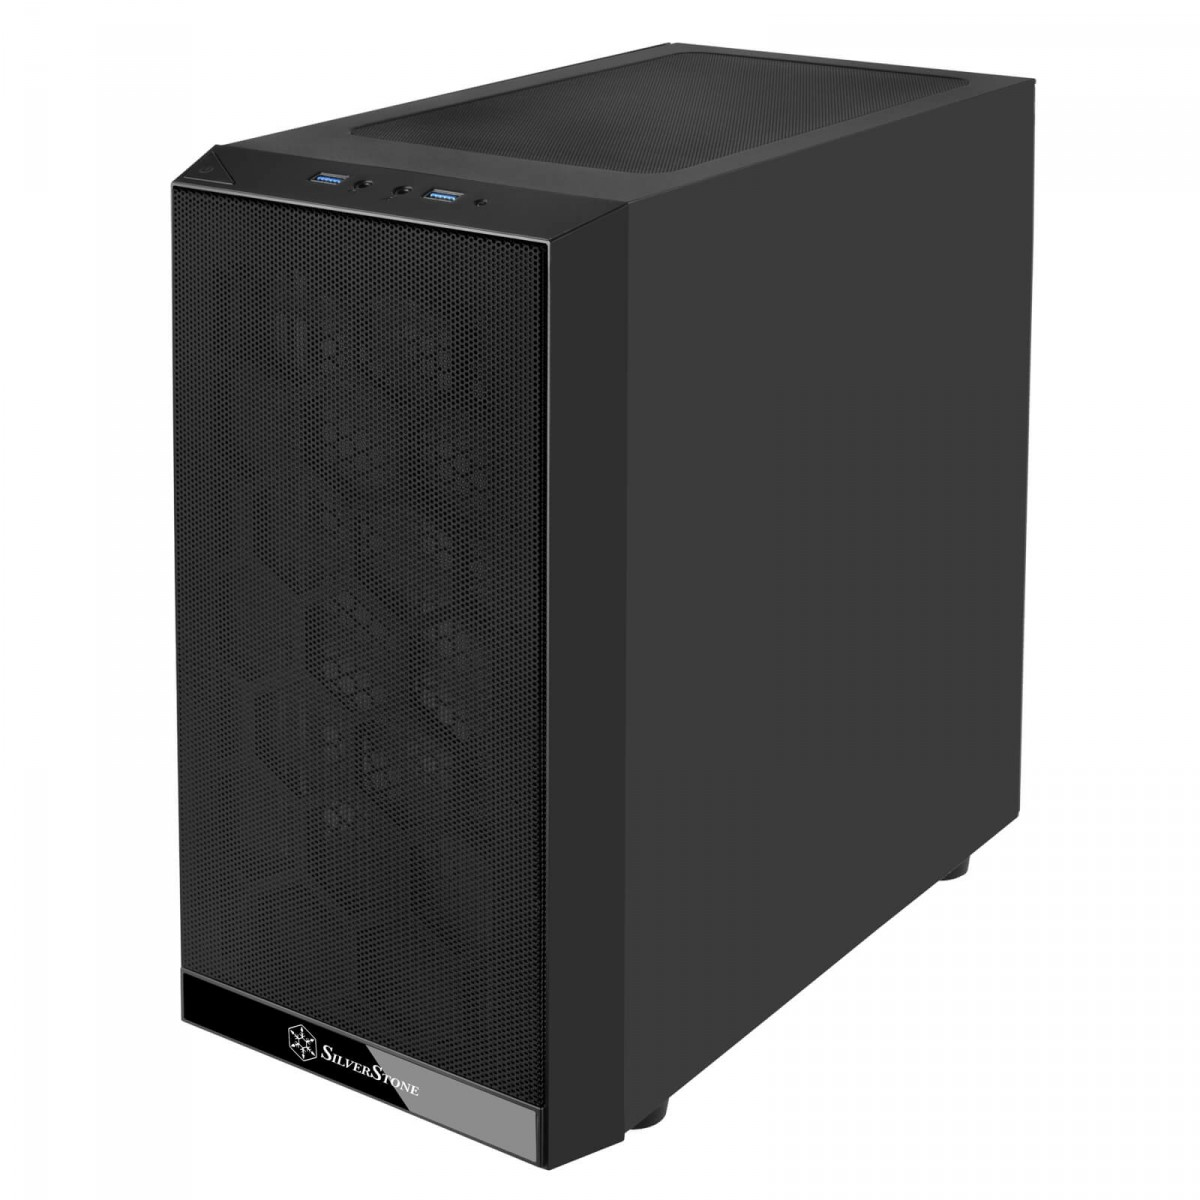 Gabinete Gamer SilverStone PS15 Pro, Mini Tower, Vidro Temperado, Black, Sem fonte, Com 3 Fans, SST-PS15B-PRO